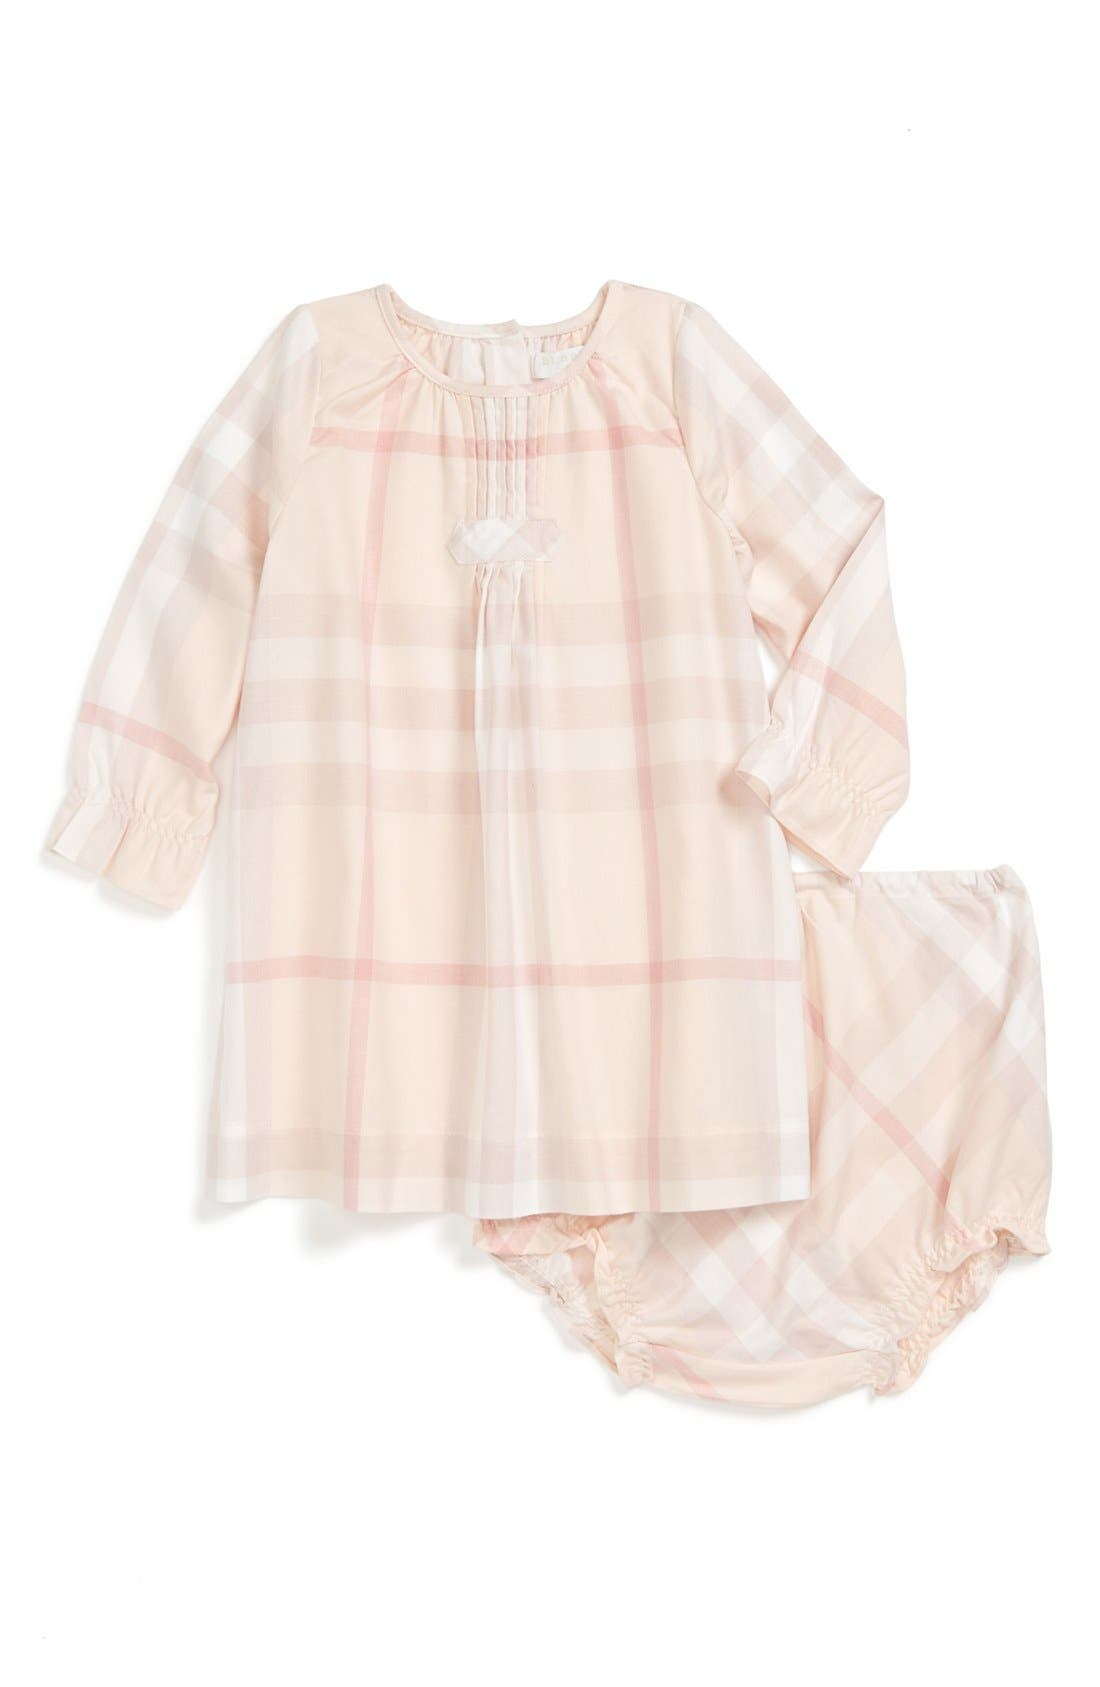 Main Image - Burberry Check Print Dress & Bloomers (Baby Girls)